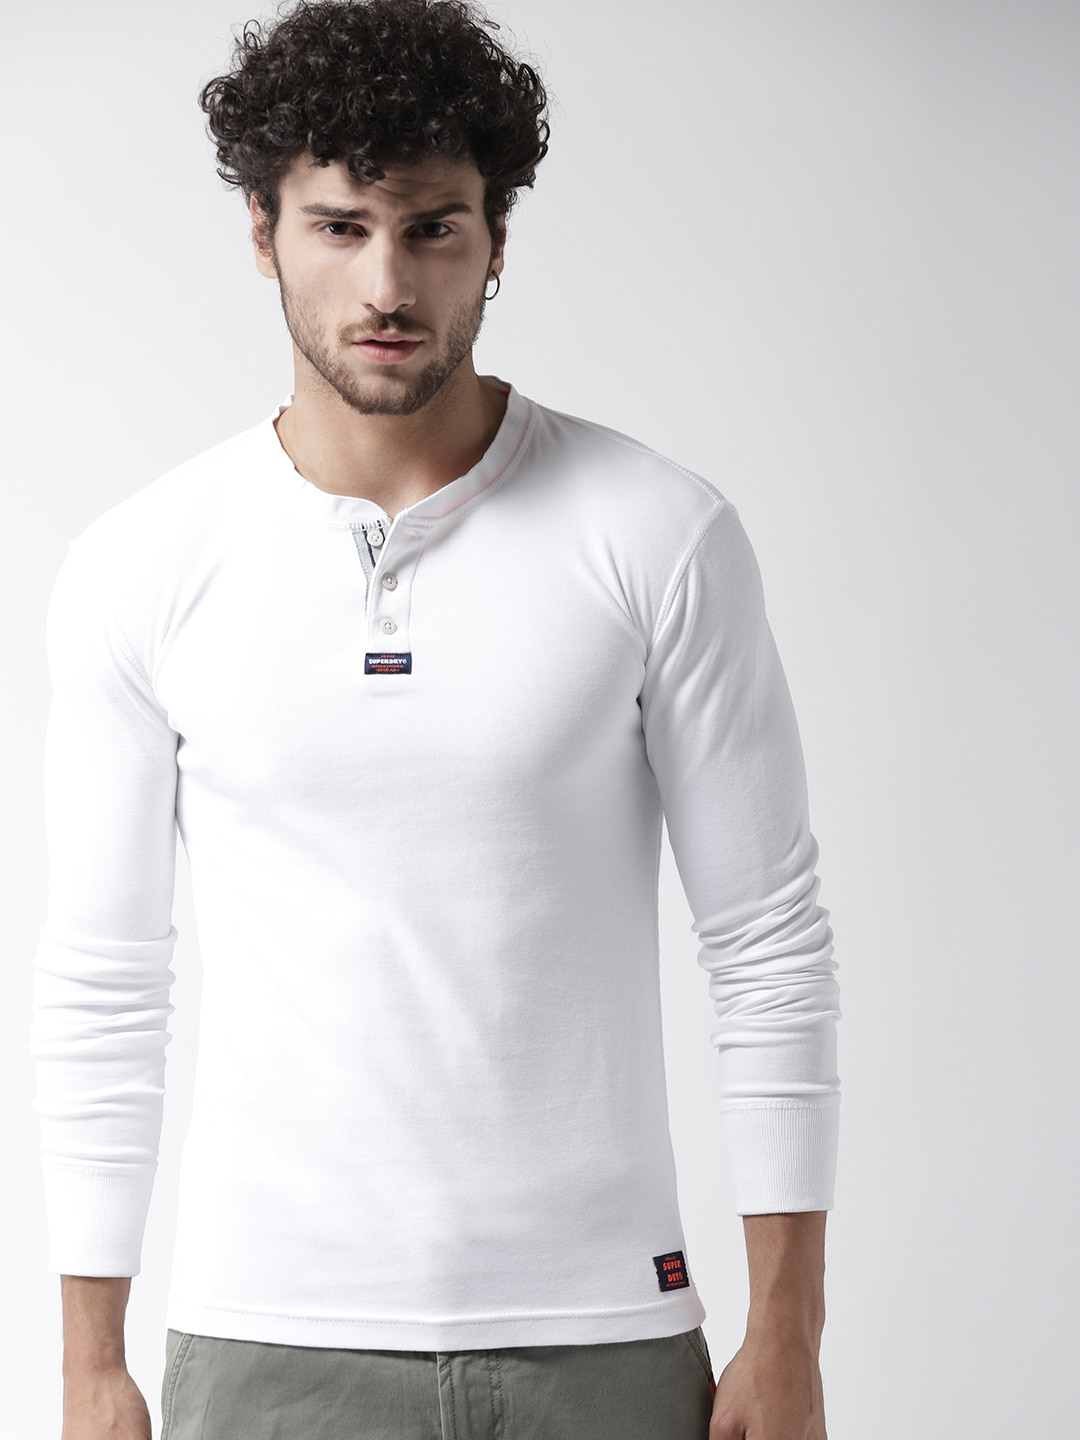 a985bb30adf Superdry Long Sleeve Tshirts - Buy Superdry Long Sleeve Tshirts online in  India